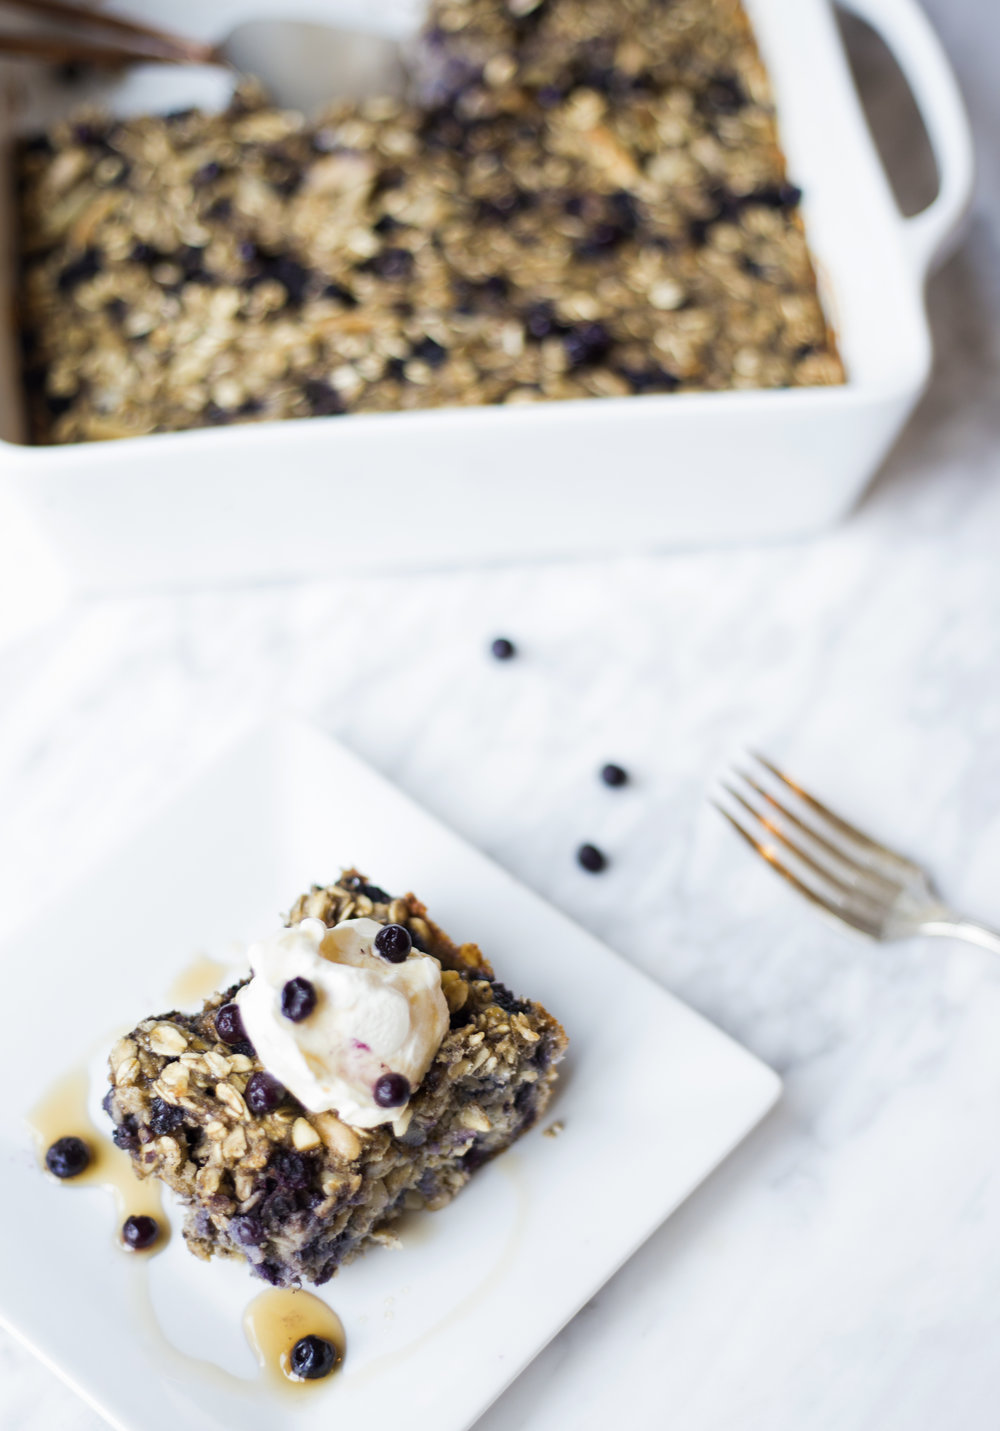 Healthy, gluten-free, naturally-sweetened Breakfast for the kids